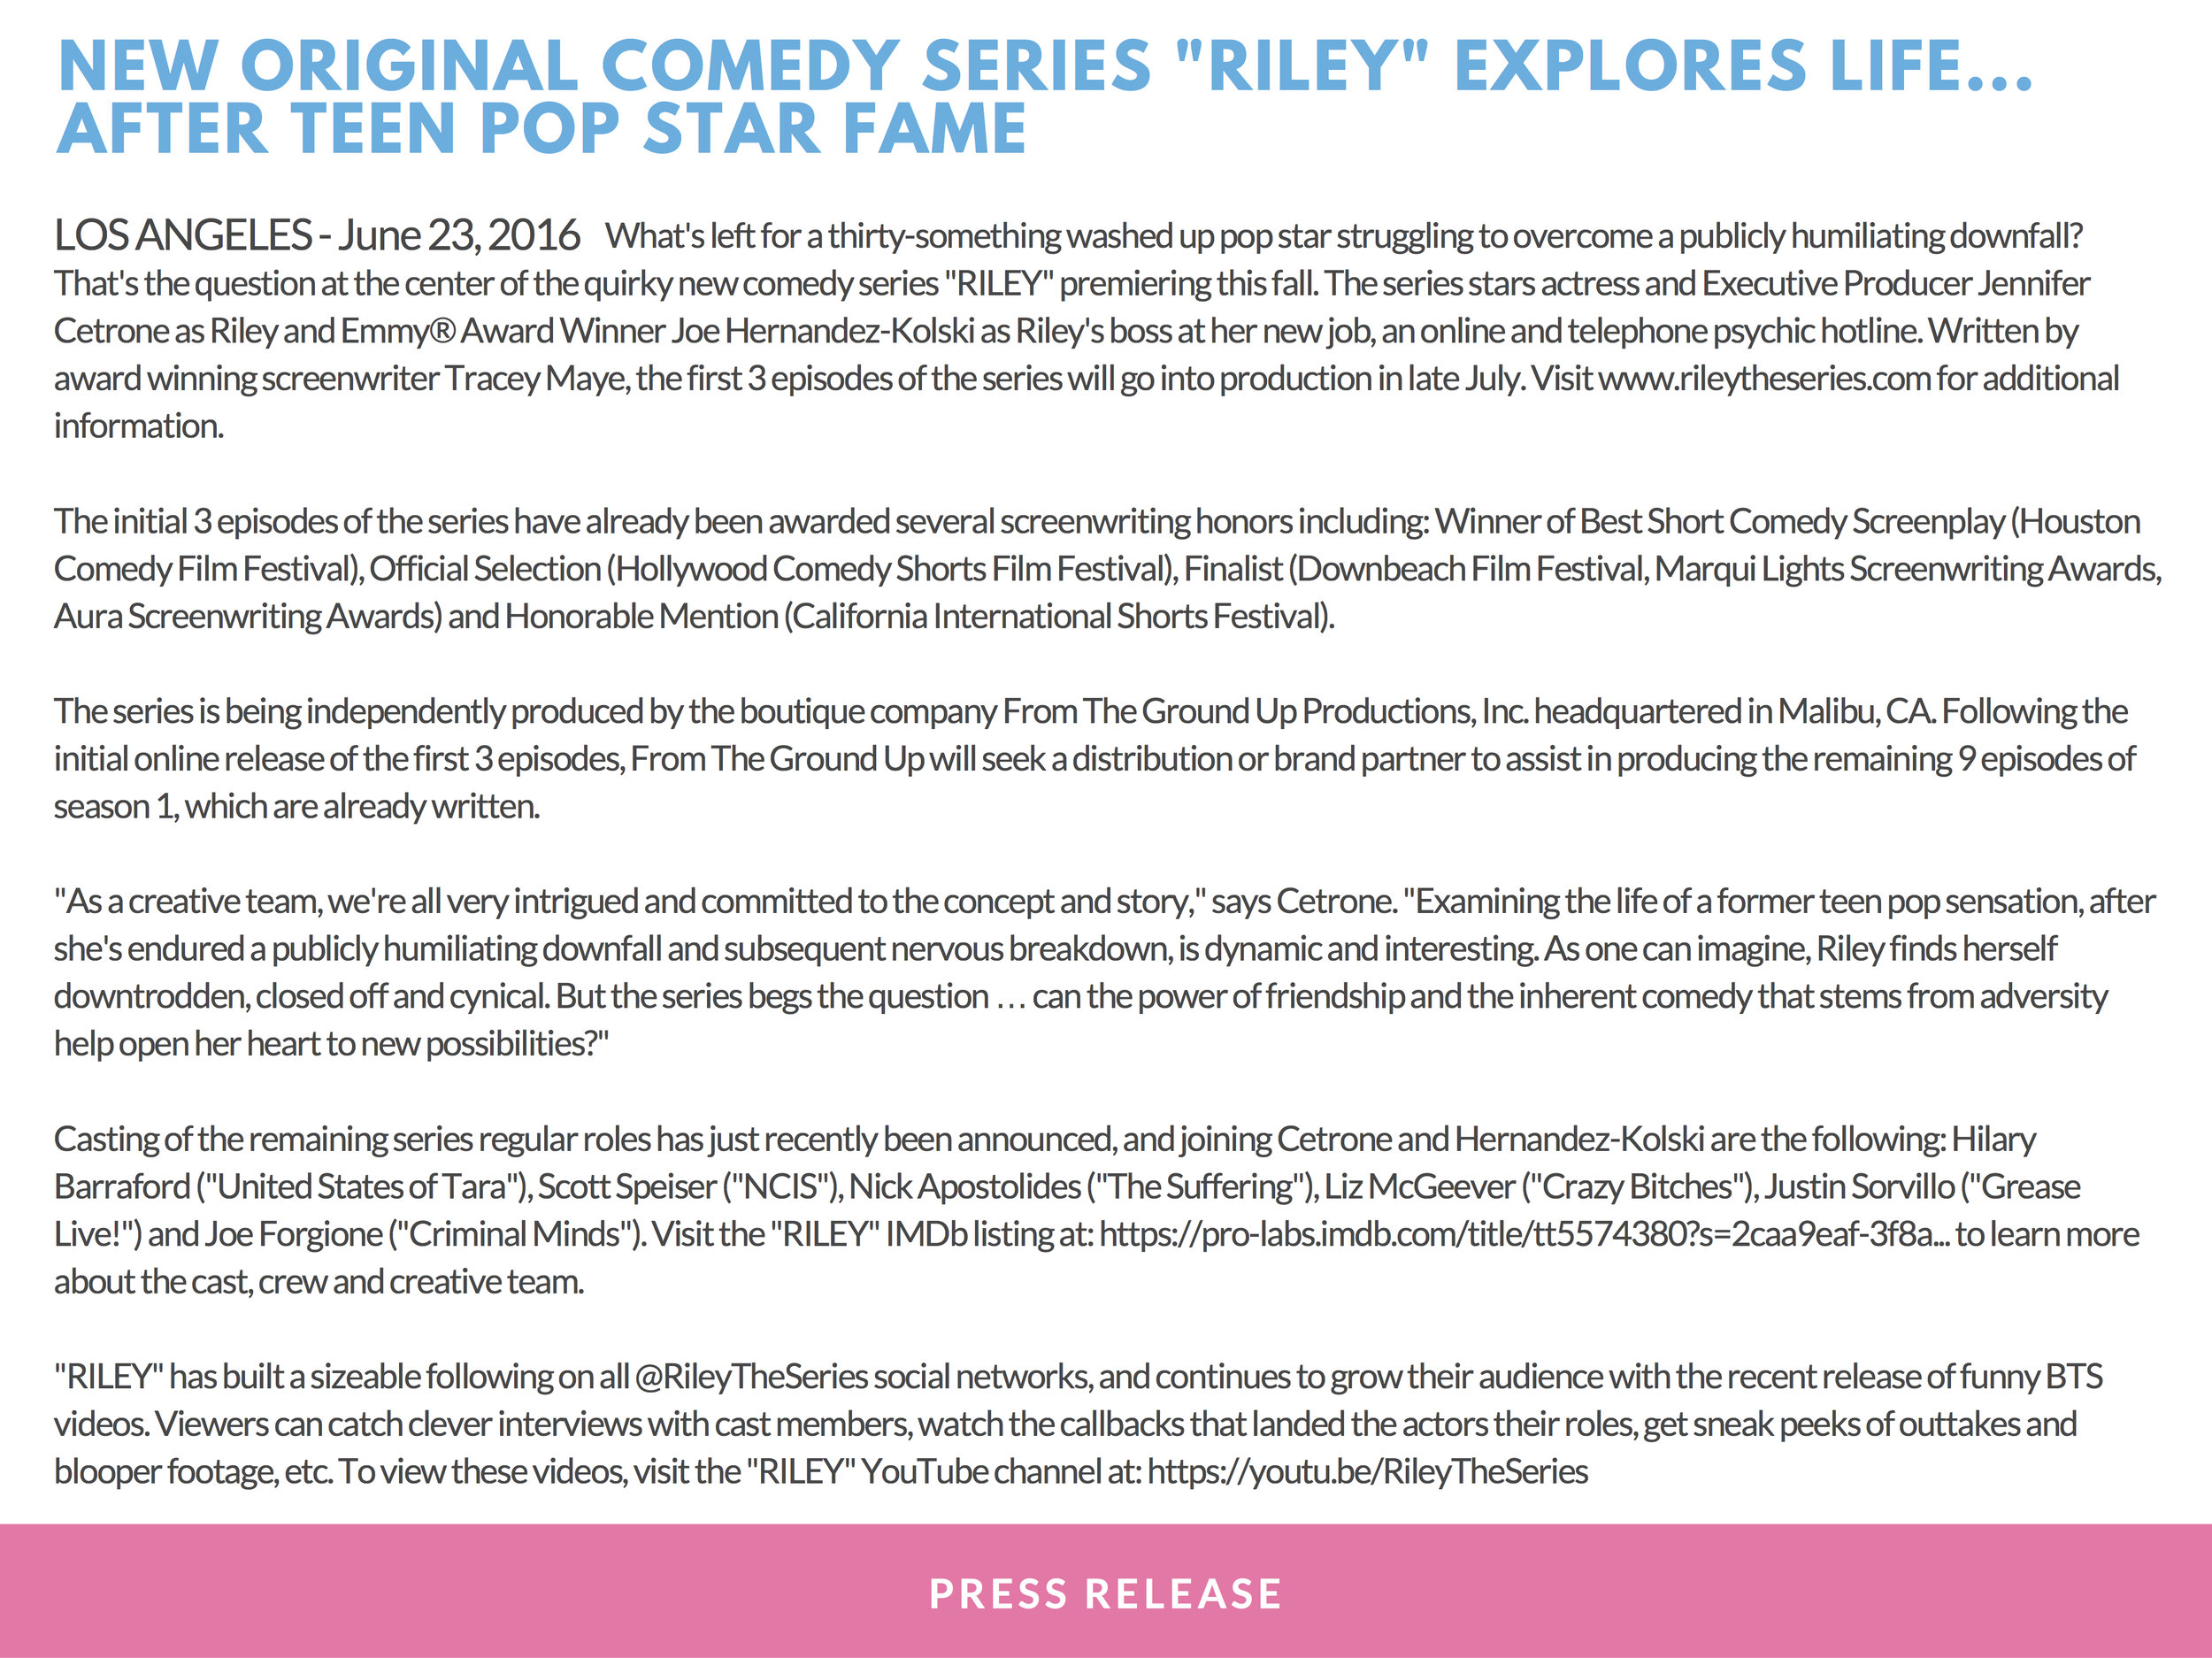 RILEY PRESS KIT - PAGE 14   (   press release #1   )   - CLICK FOR HIGH RES JPEG